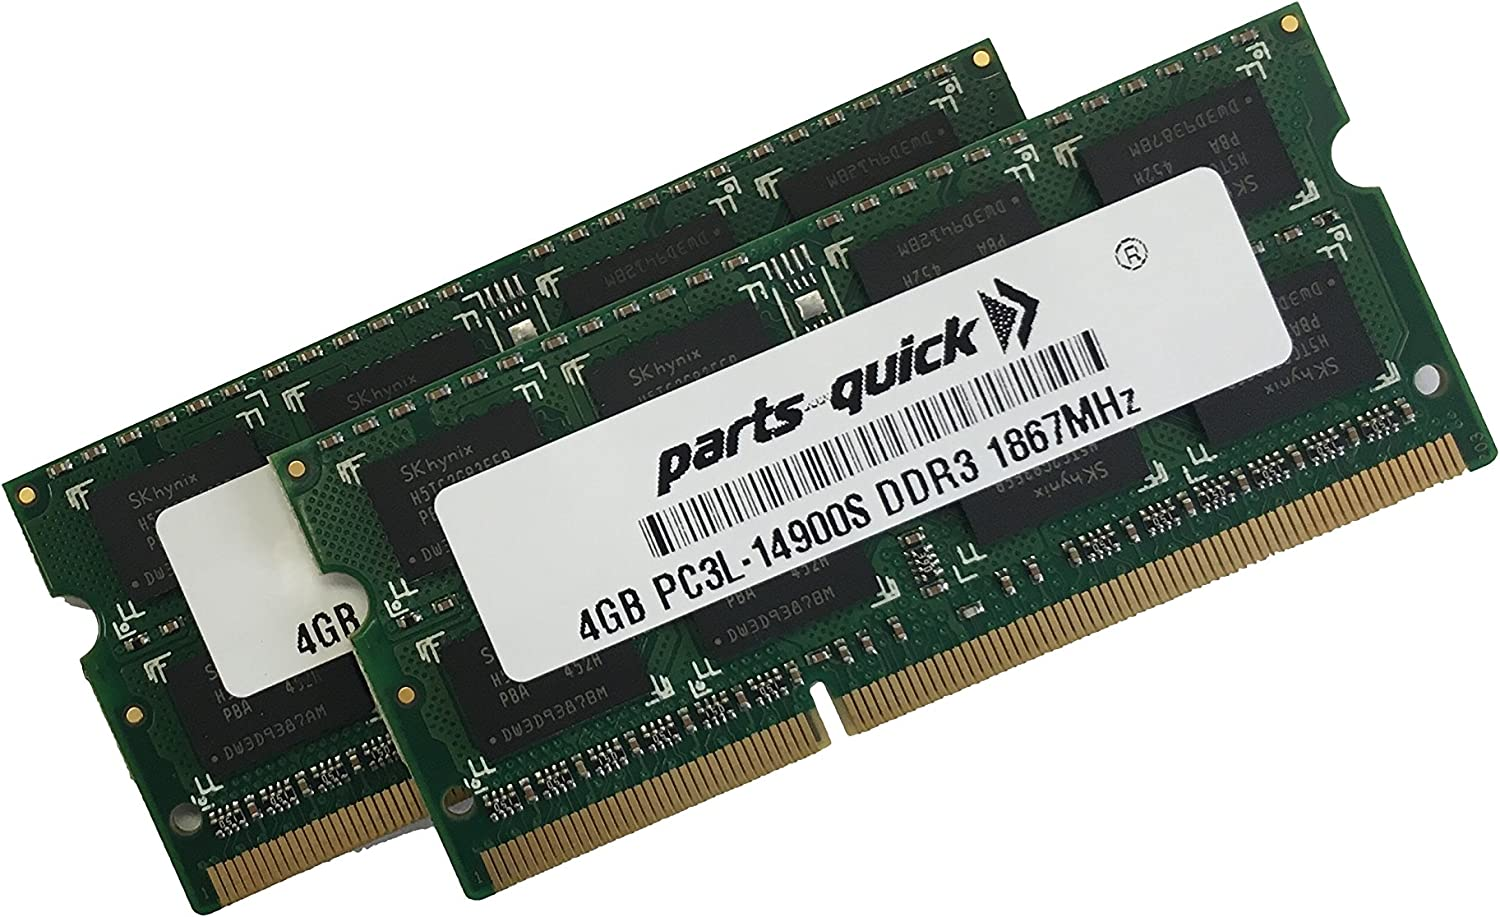 8GB (2 X 4GB) Kit Memory for Apple iMac Late 2015 27-inch 1867MHz DDR3 SO-DIMM (PARTS-QUICK Brand)